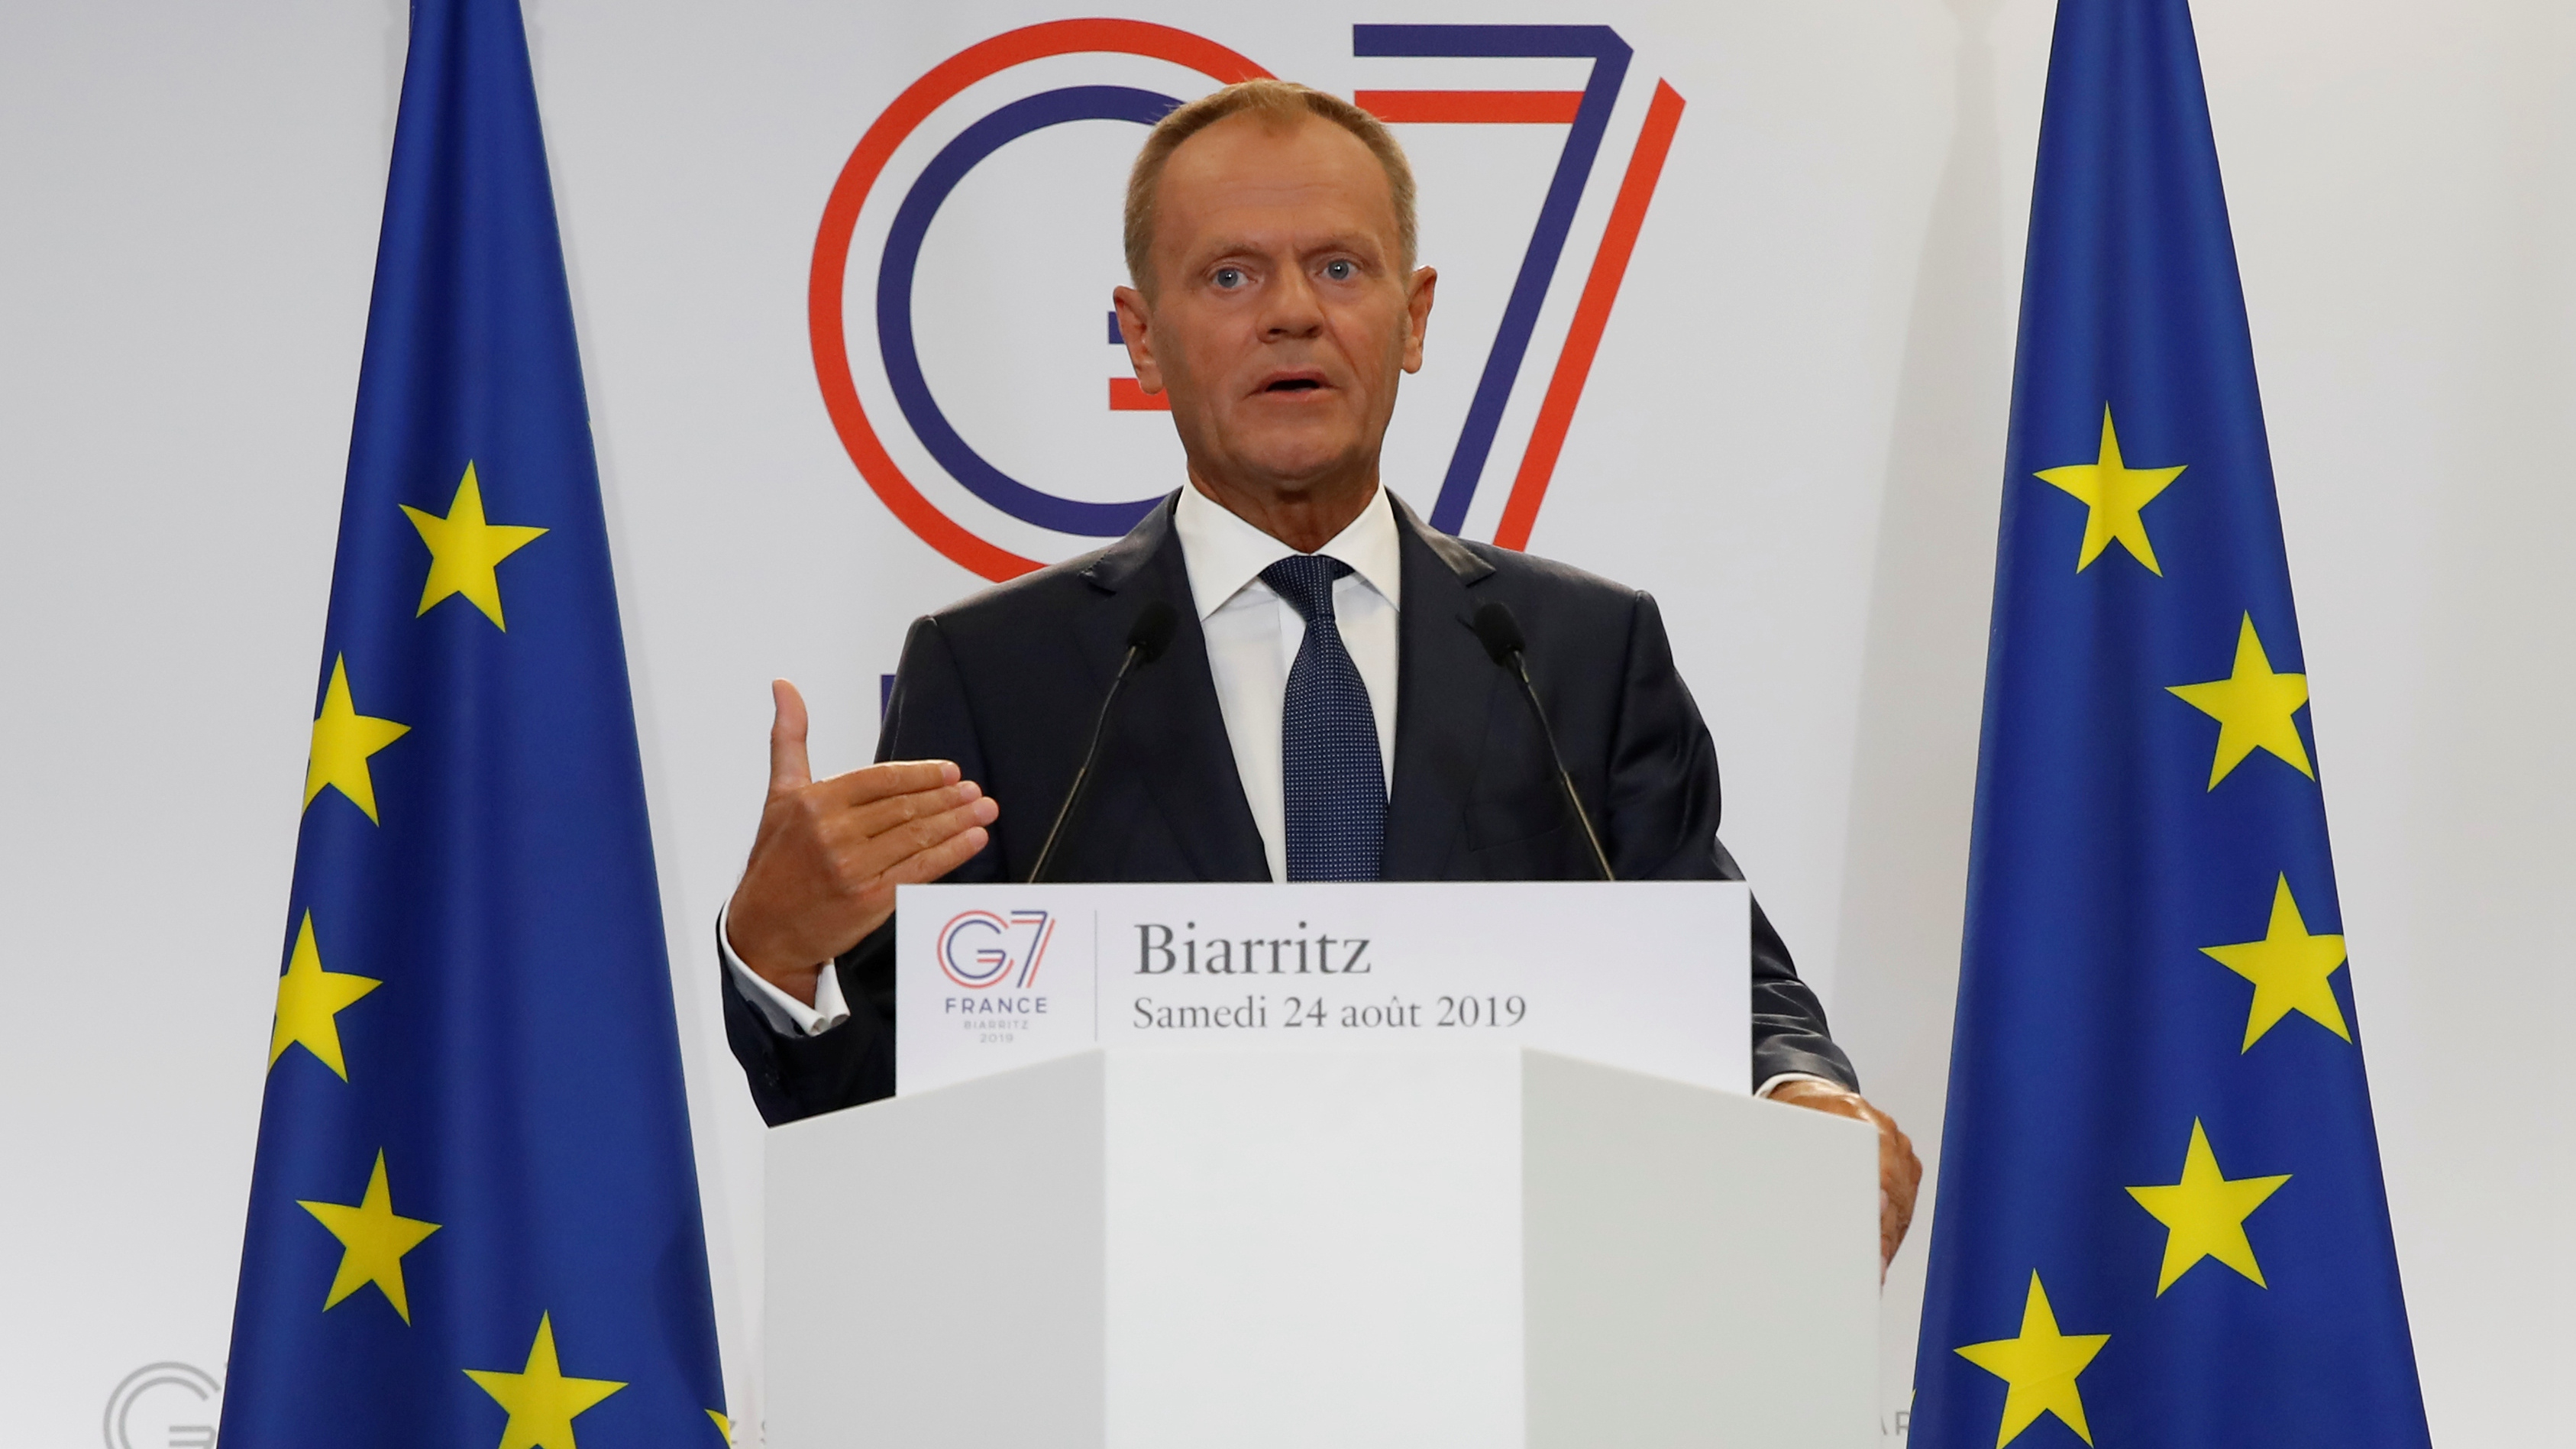 Tusk says EU would respond to US tariffs on French wine, warning on trade war risks